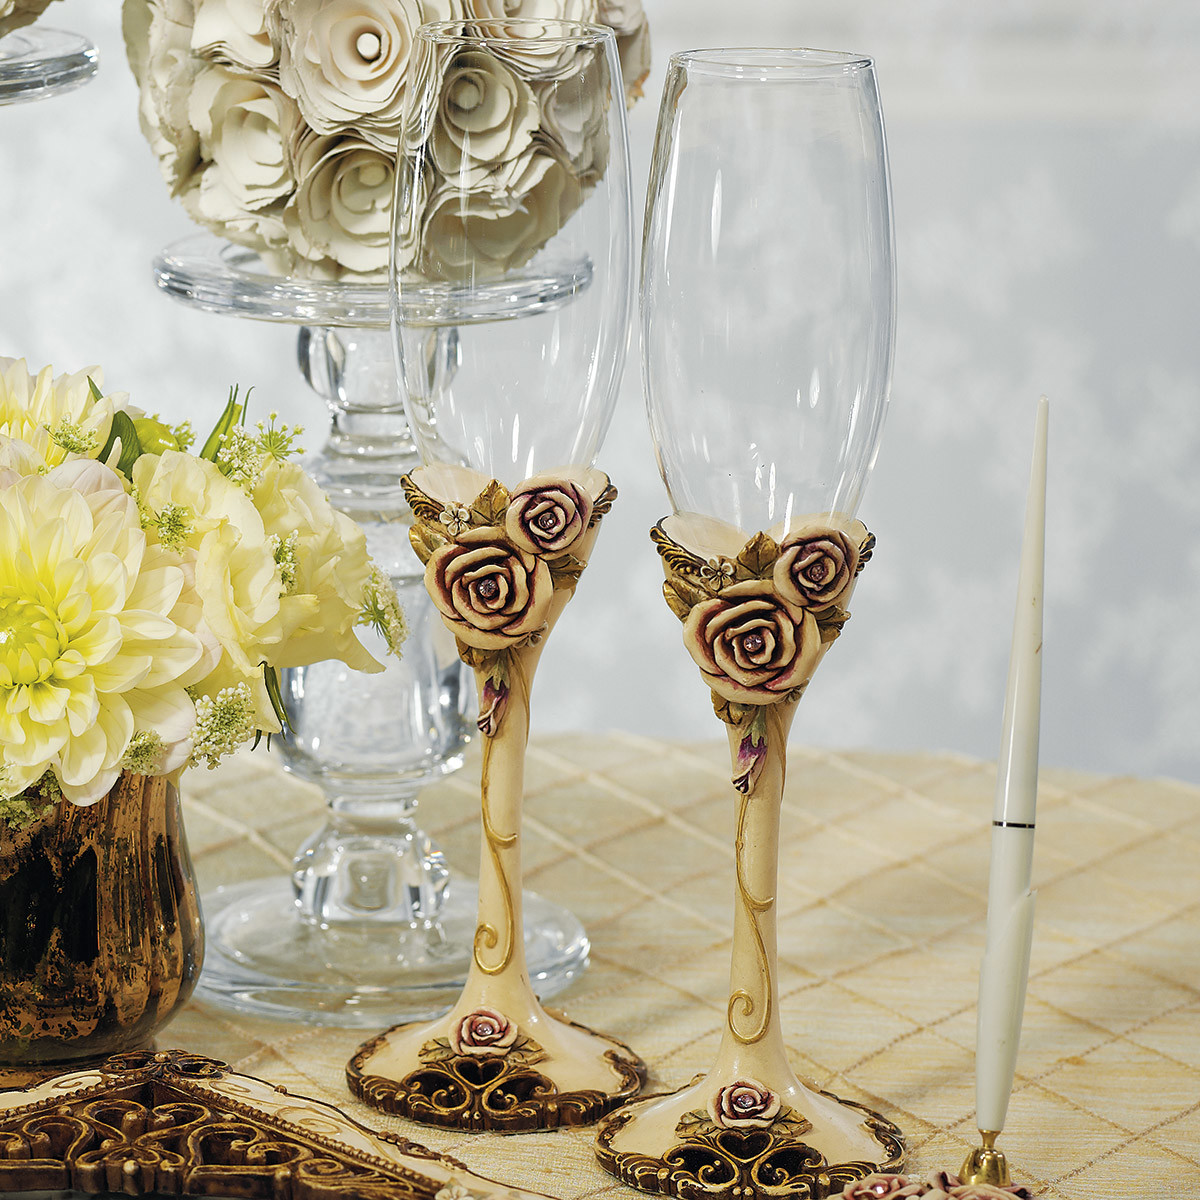 Vintage-Rose-Wedding-Toasting-Champagne-Flute-Glass-9293